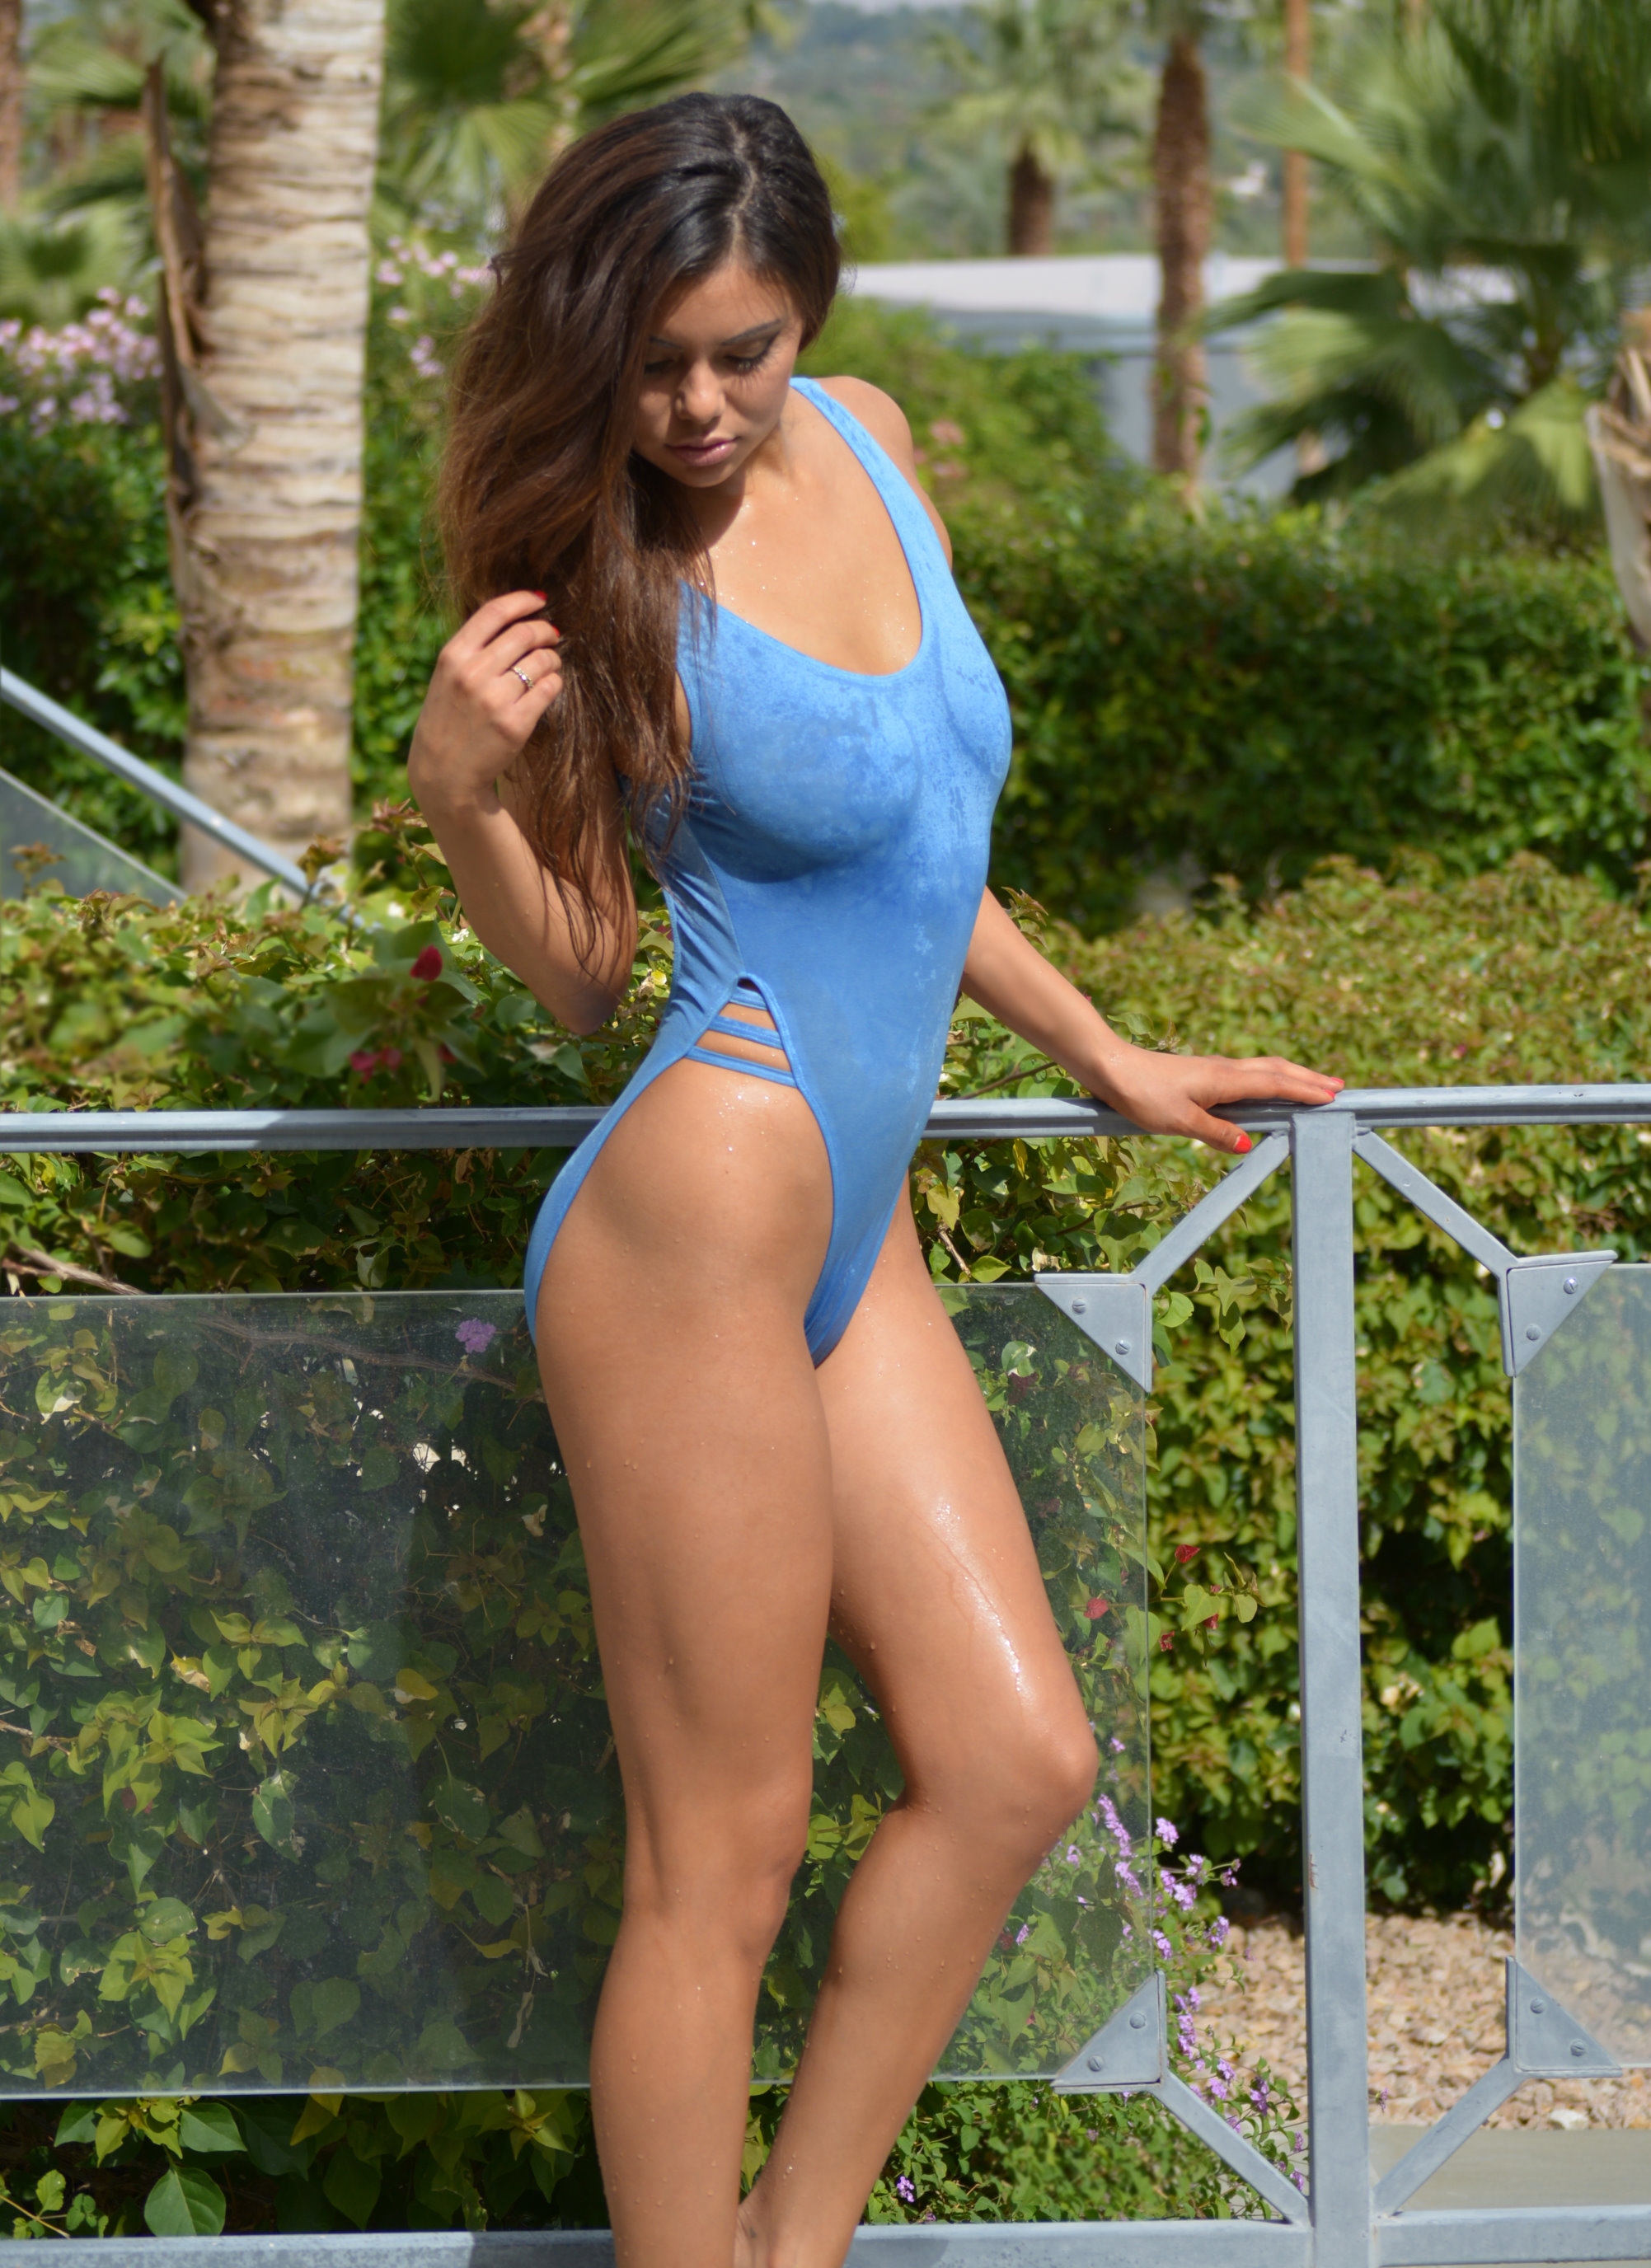 Sexy swim suits for women